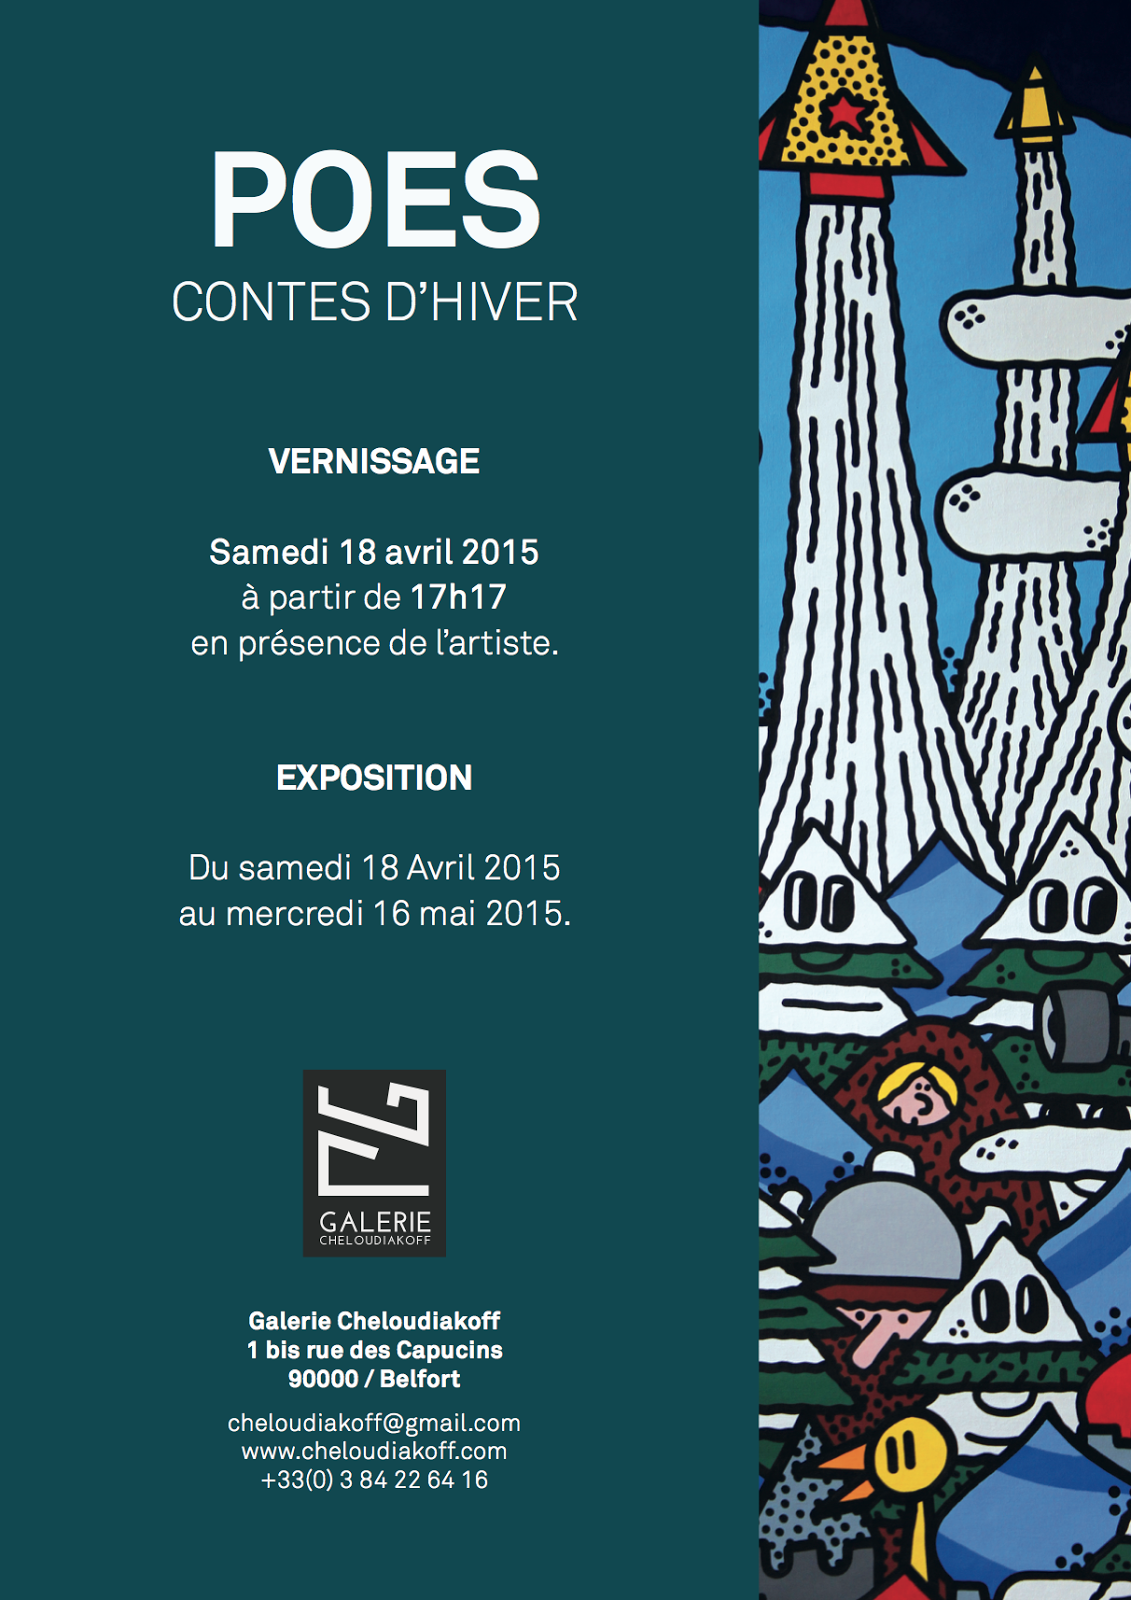 Exposition POES Contes D Hiver Galerie Cheloudiakoff Belfort Street ART (2)